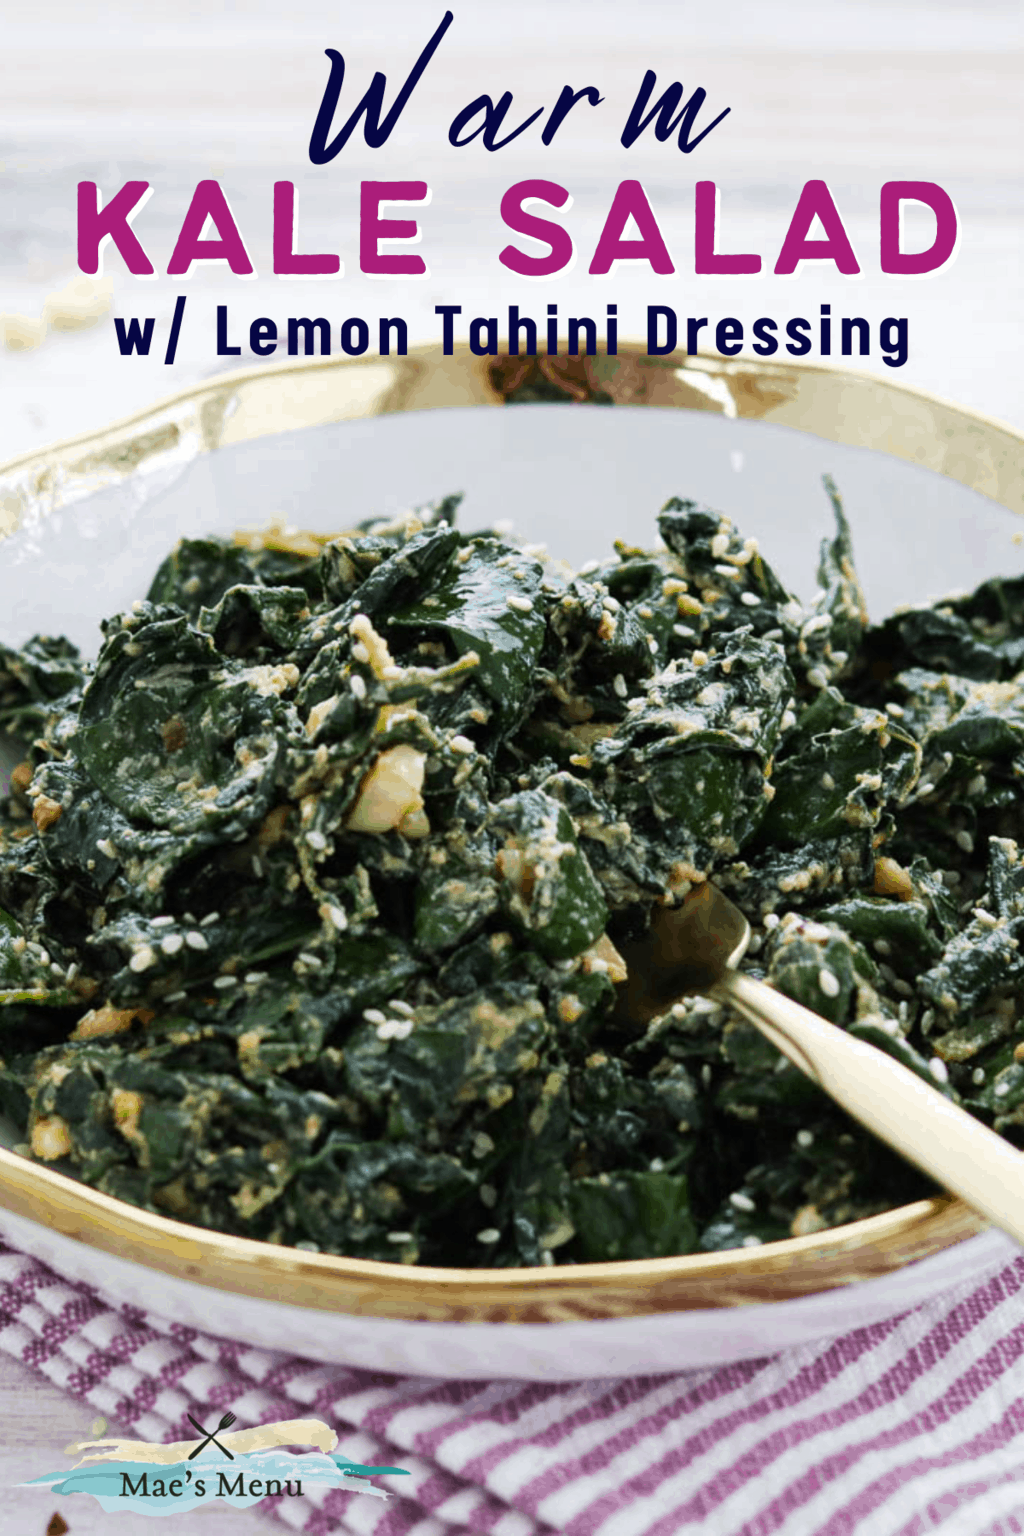 A pinterest pin for warm kale salad with lemon tahini salad dressing. on the image is an upclose shot of the salad in a bowl